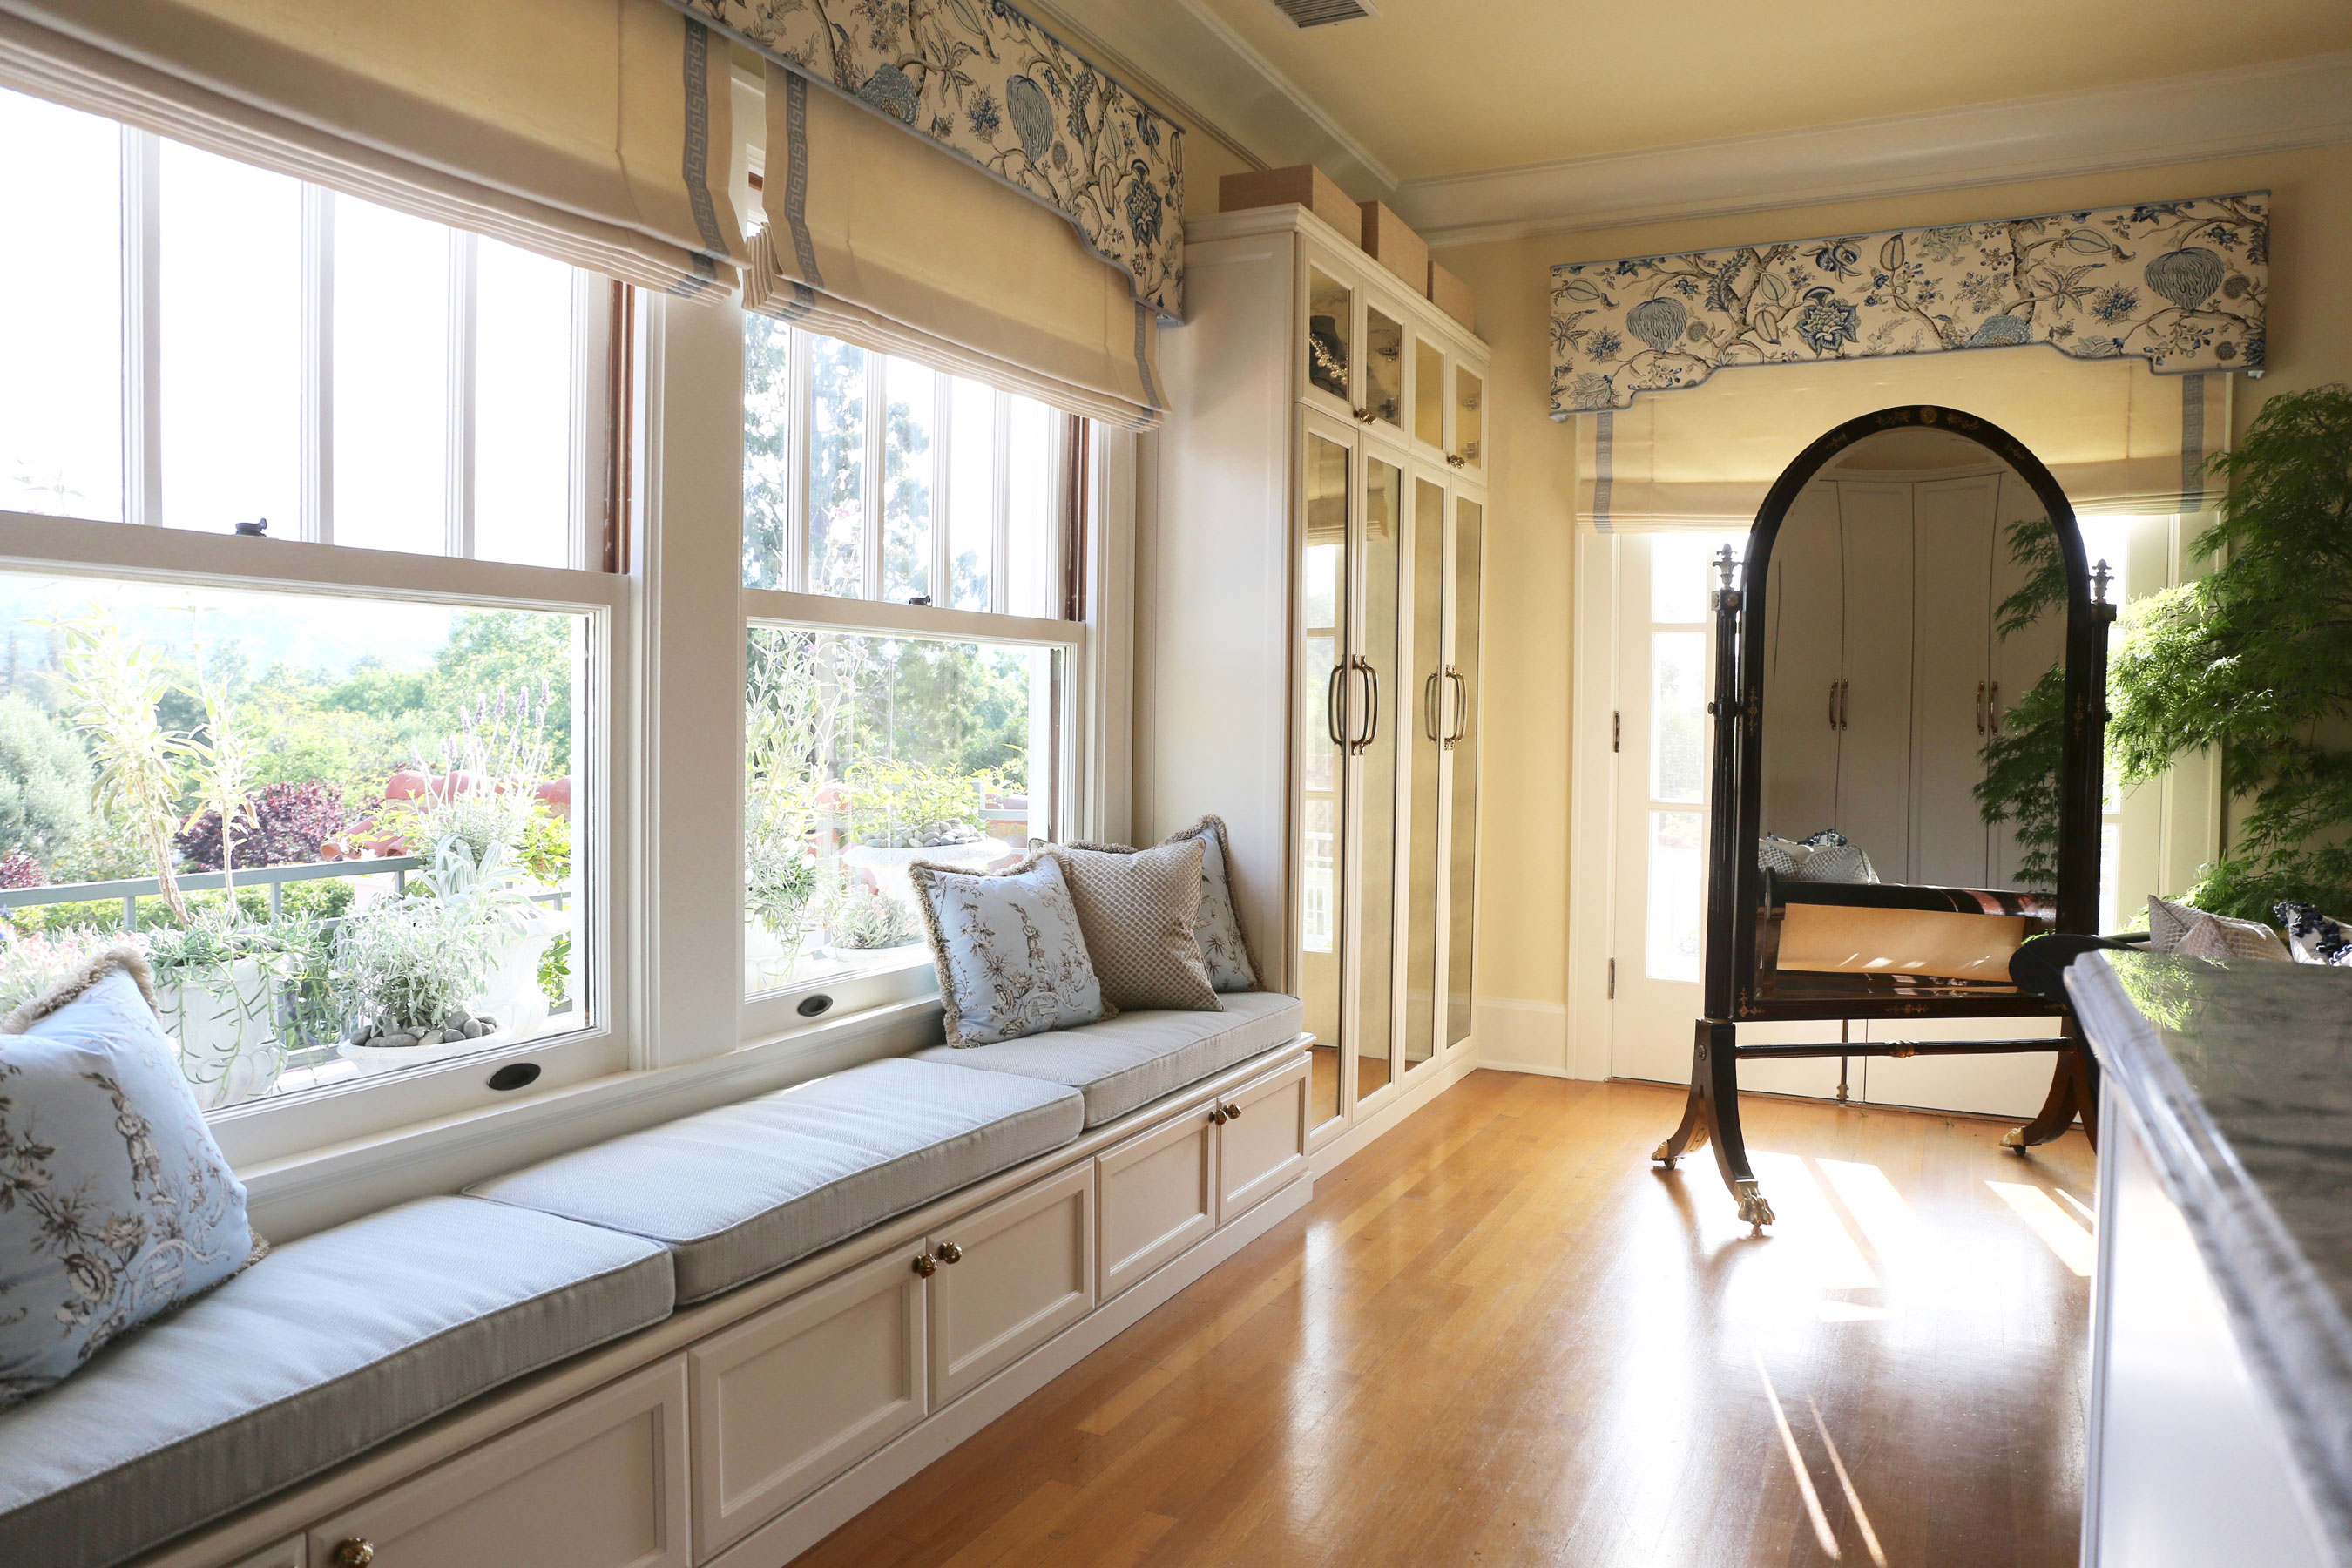 This California home's walk-in wardrobe and dressing room is appointed with custom-designed built-ins including several closets, a center island, and banquette; chandeliers and huge windows provide ample light.